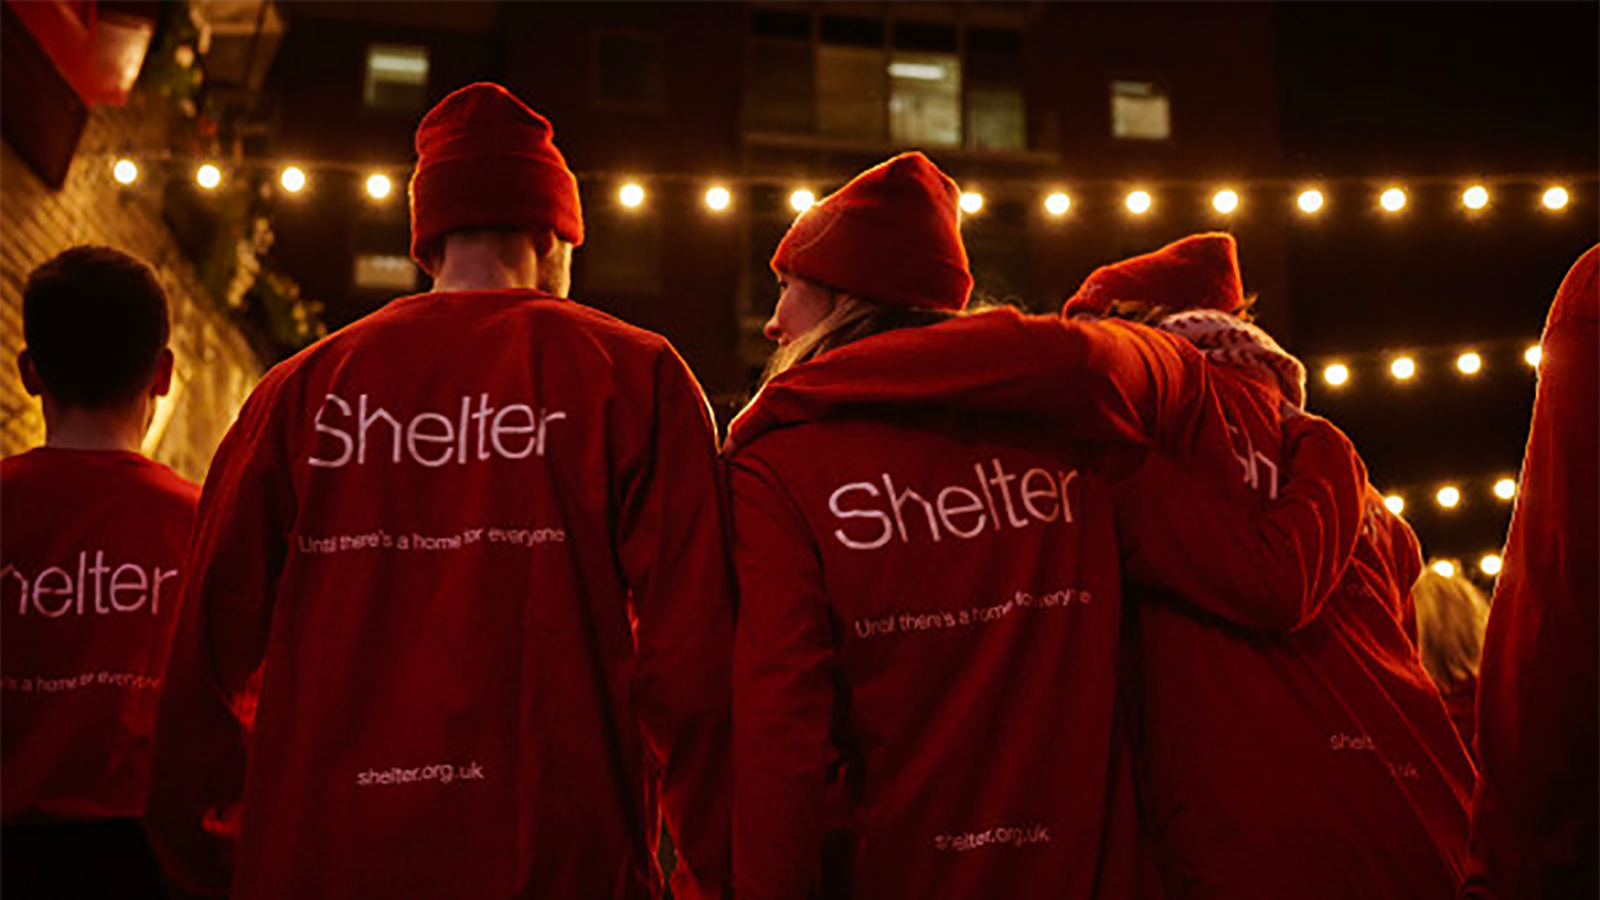 Shelter - the housing and homelessness charity